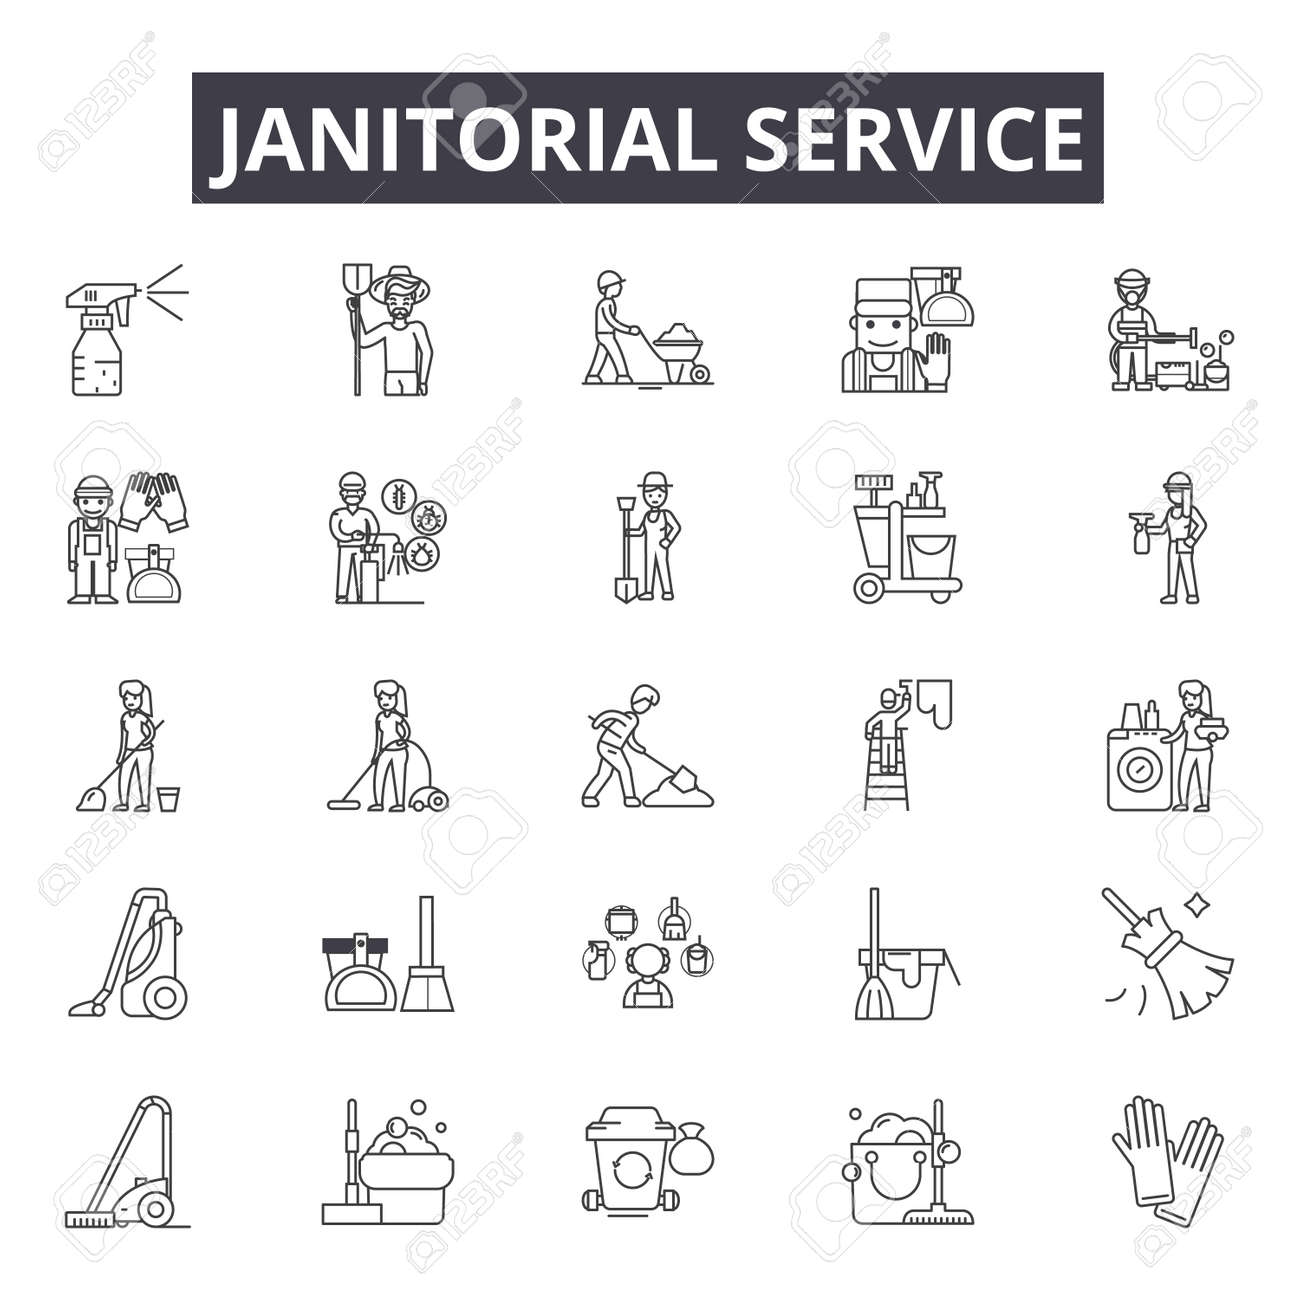 Janitorial service line icons for web and mobile. Editable stroke signs. Janitorial service outline concept illustrations - 119235485